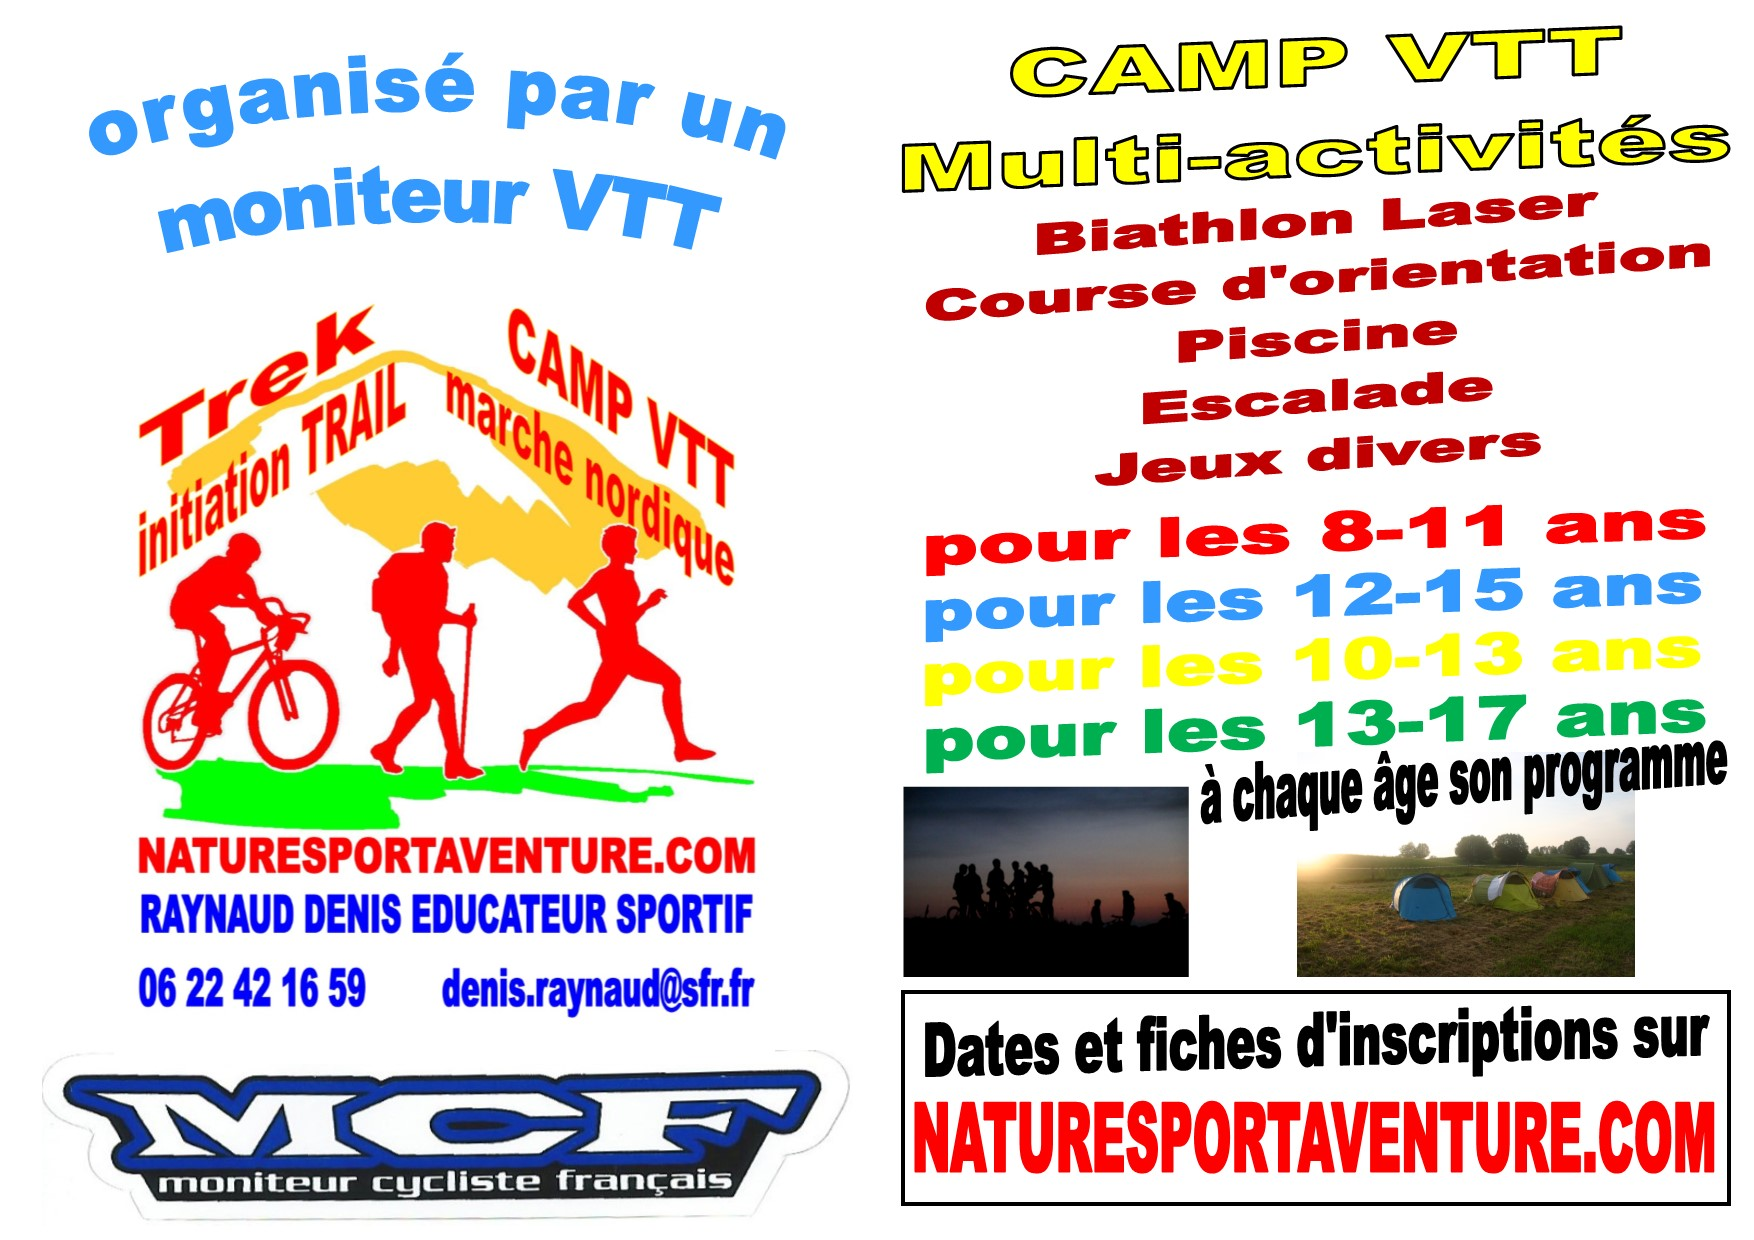 flyer camp VTT 4 volets 1.jpg